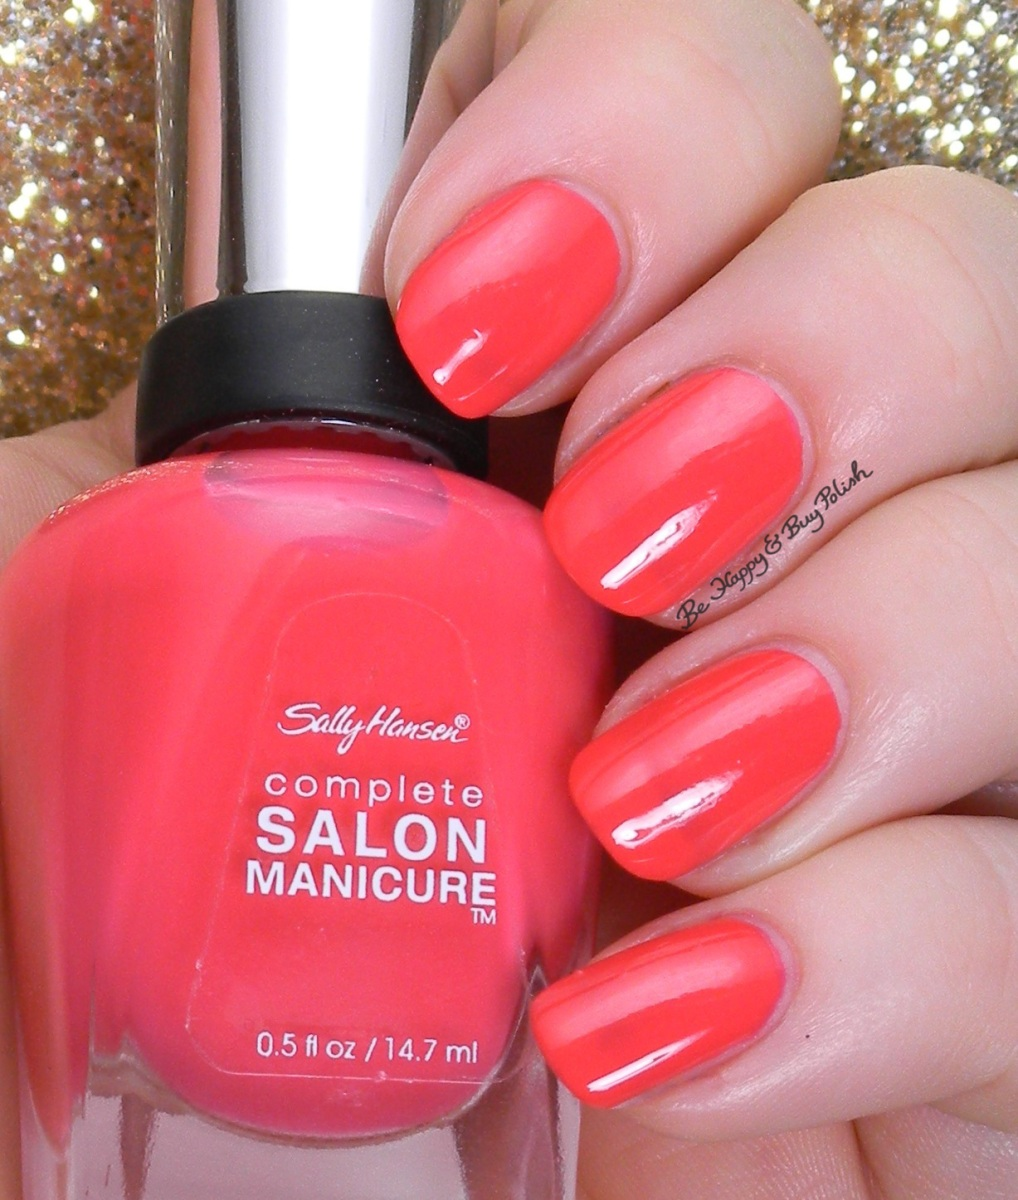 Sally Hansen Frutti Petutie swatch + review